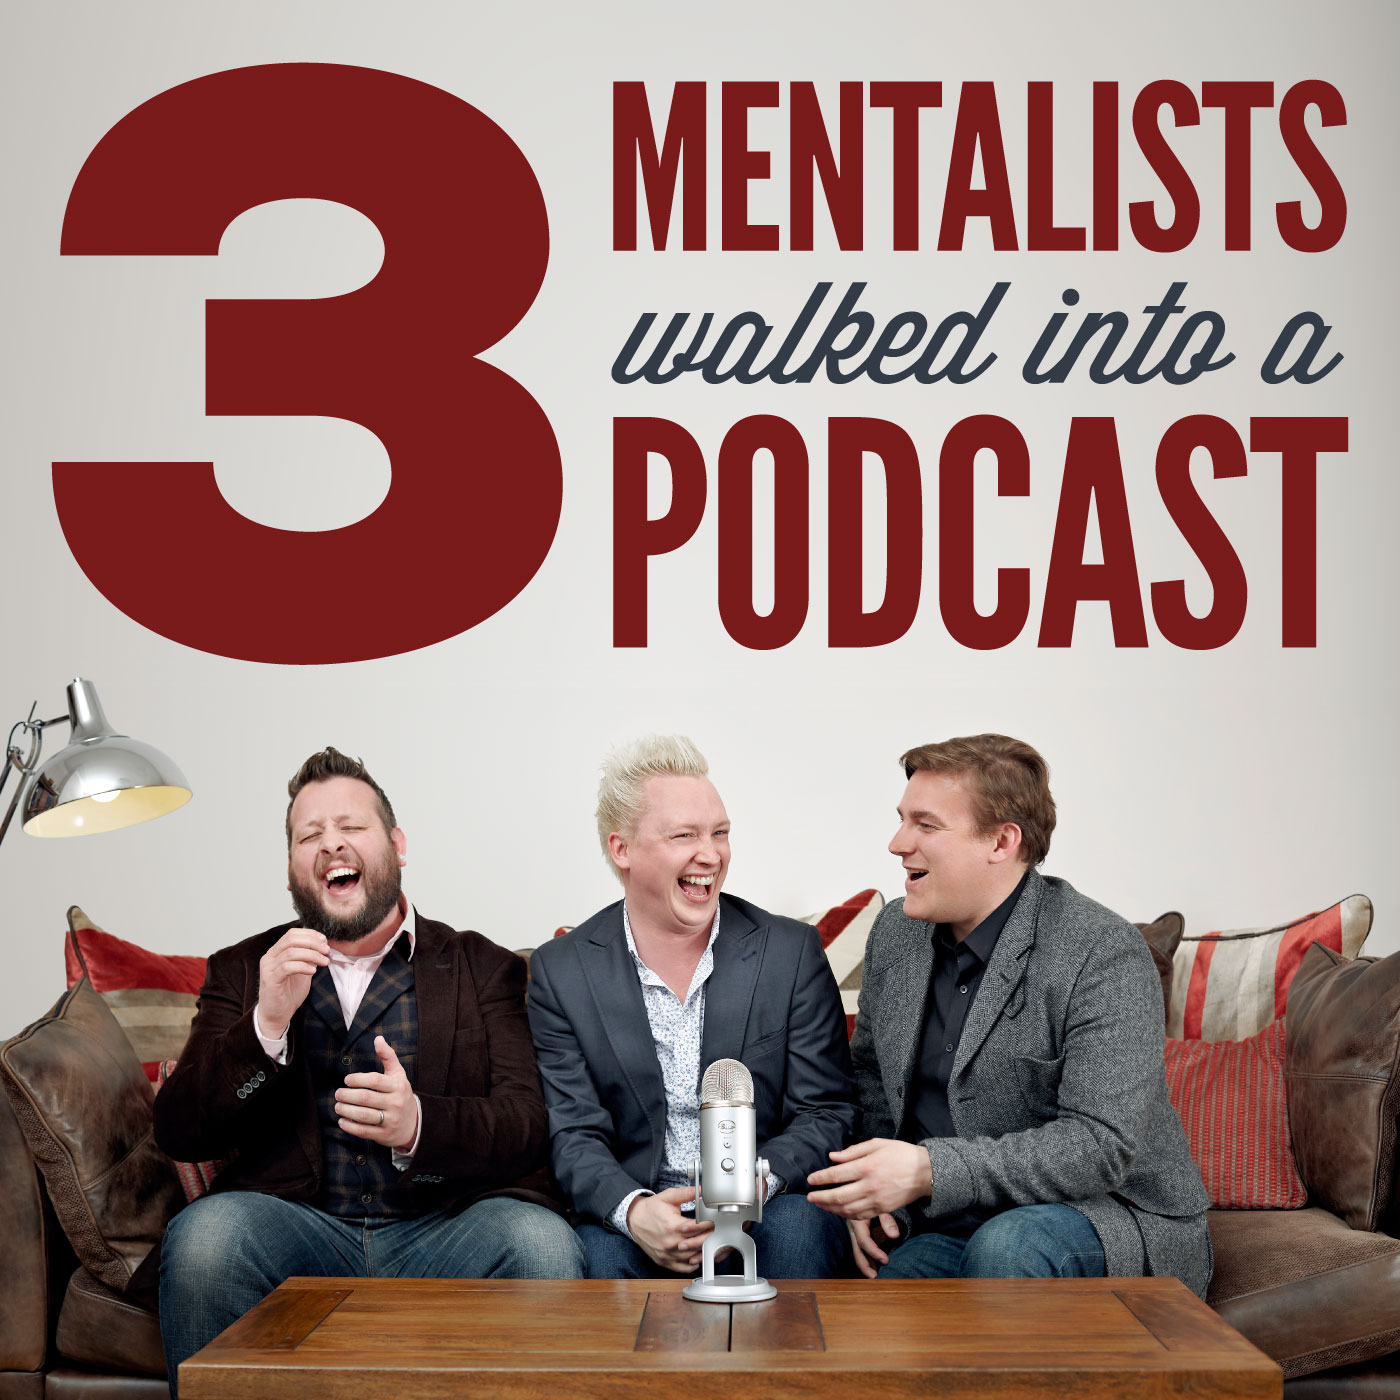 3 Mentalists Walked Into A Podcast